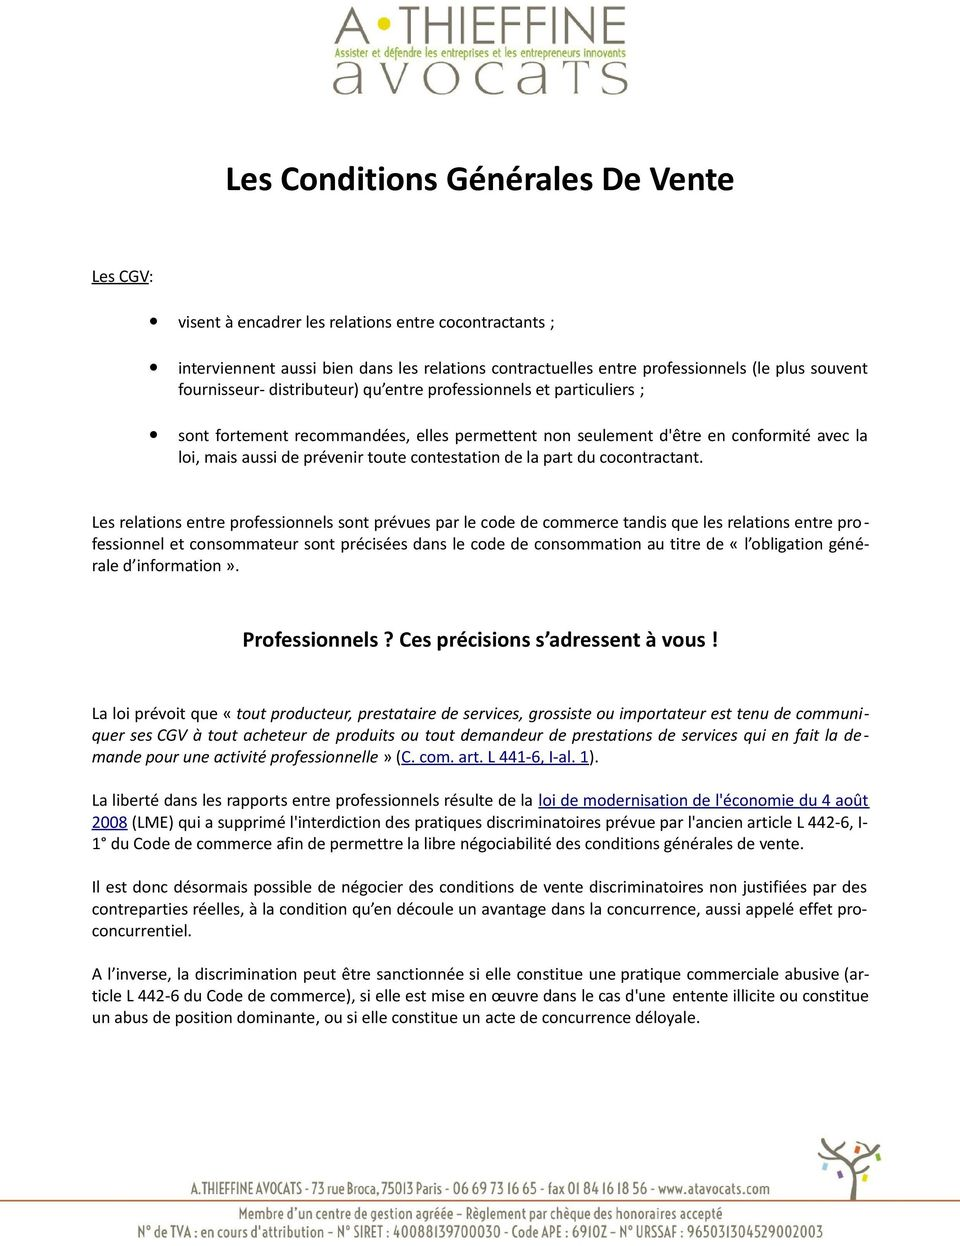 contestation de la part du cocontractant.